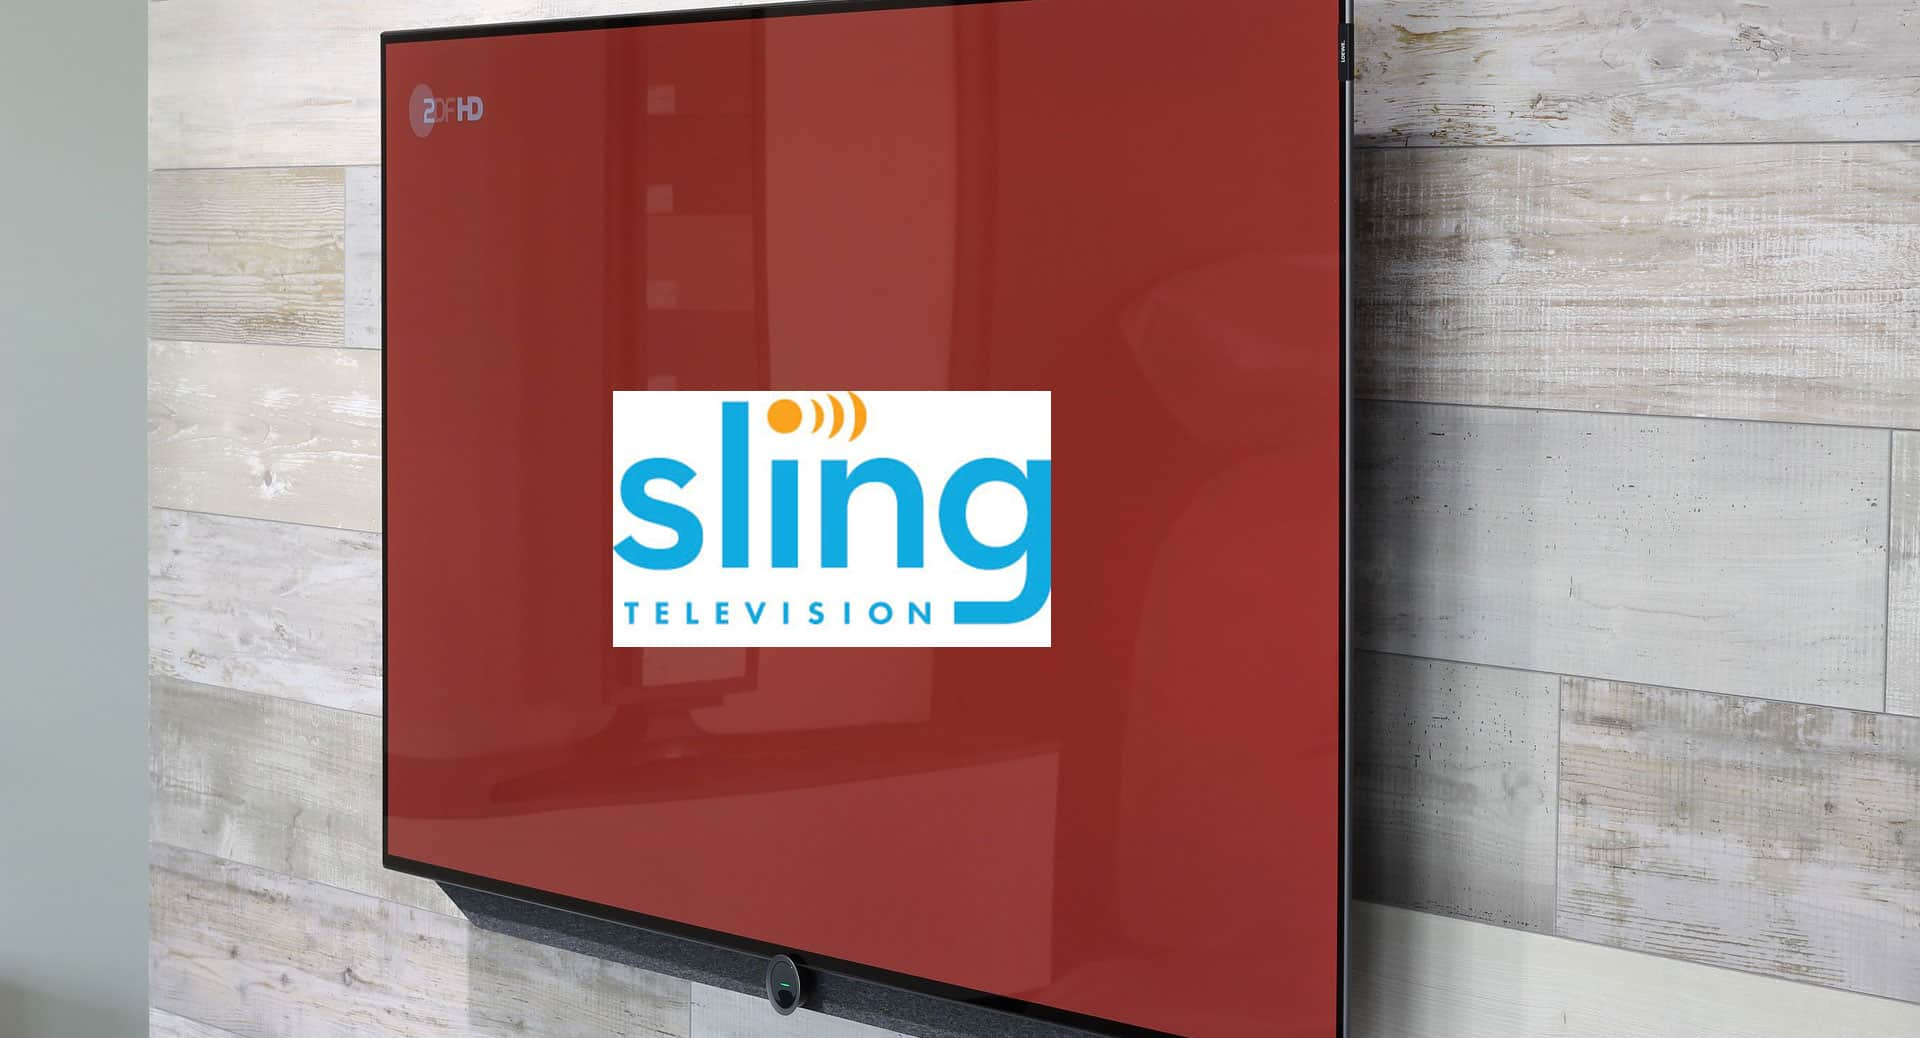 Intro to cord cutting: Sling TV review - TV packages, DVR, and more